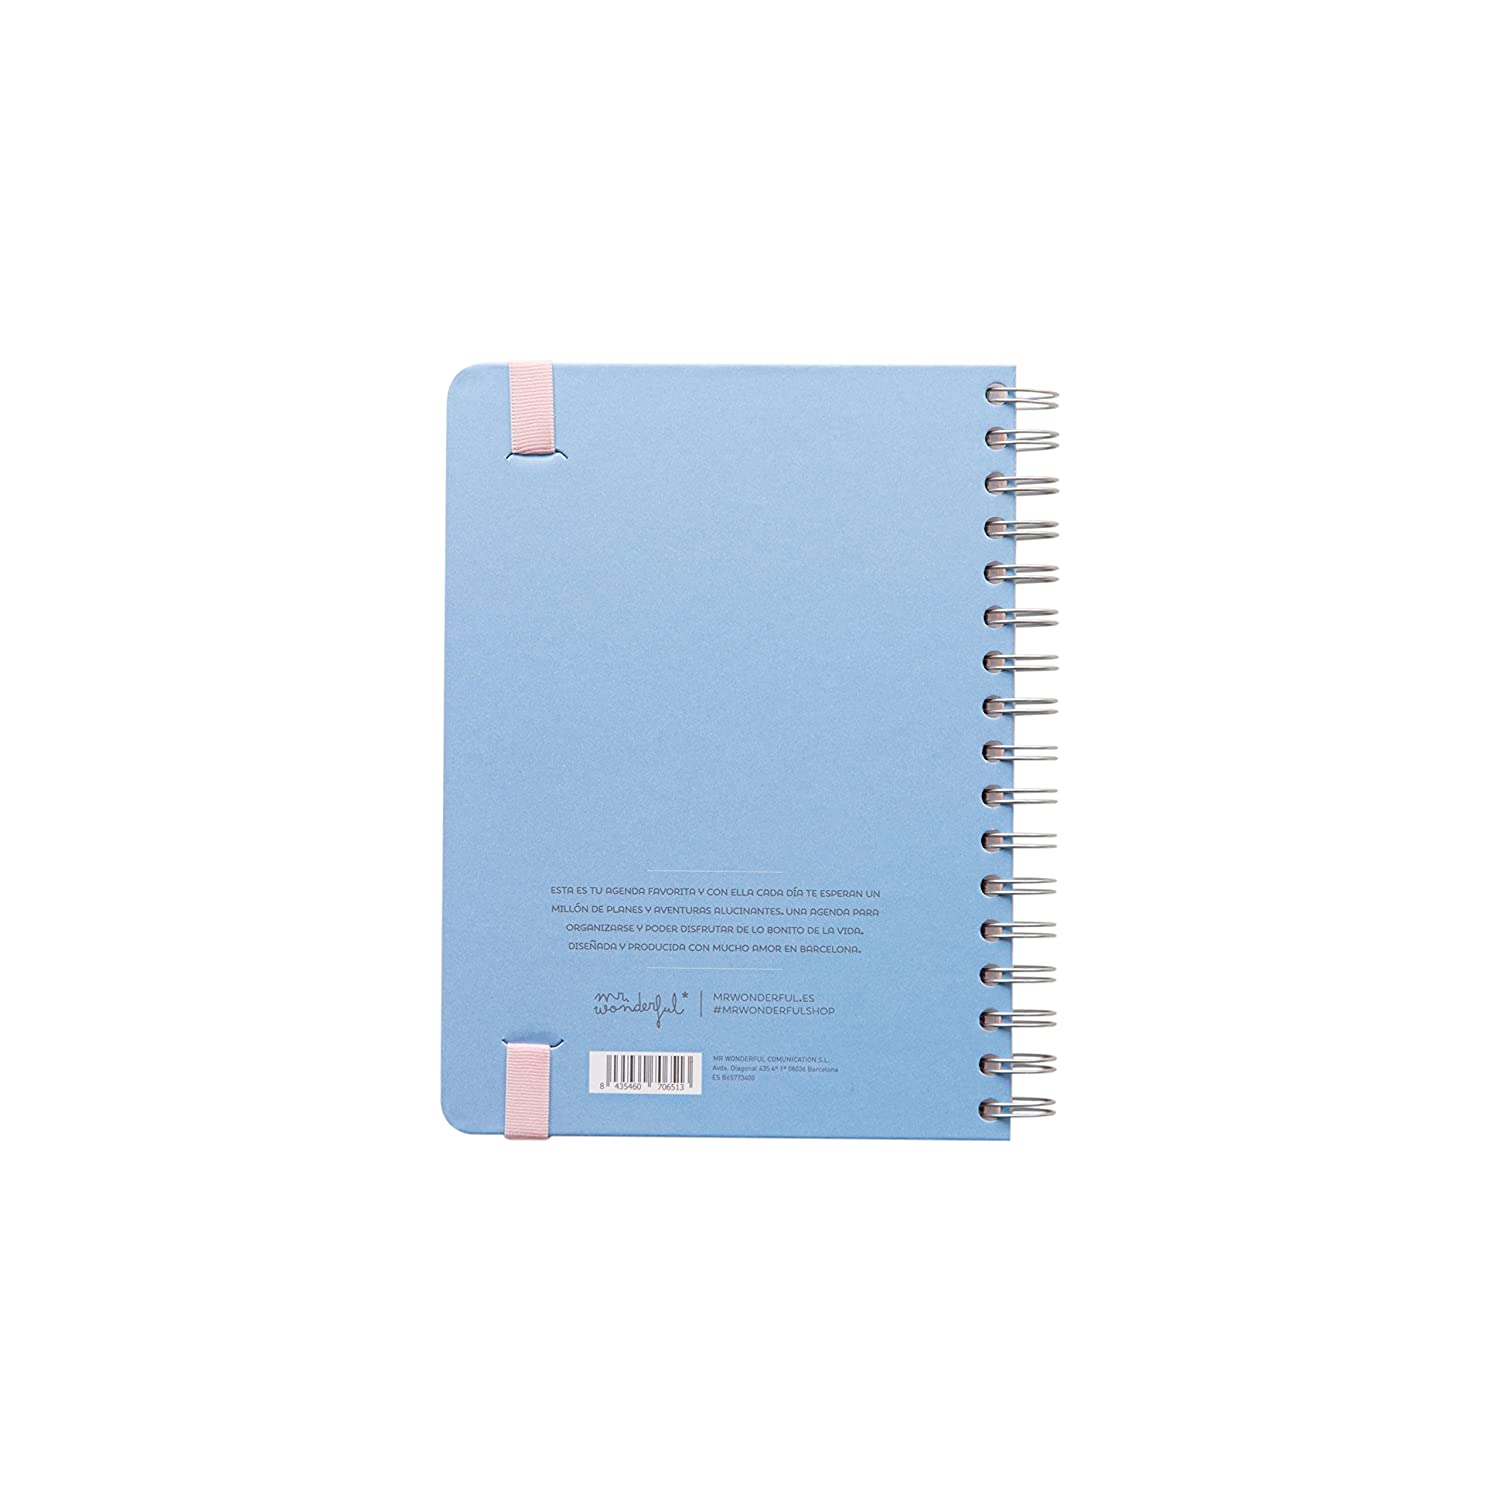 Agenda Mr. Wonderfull por solo 16,95€